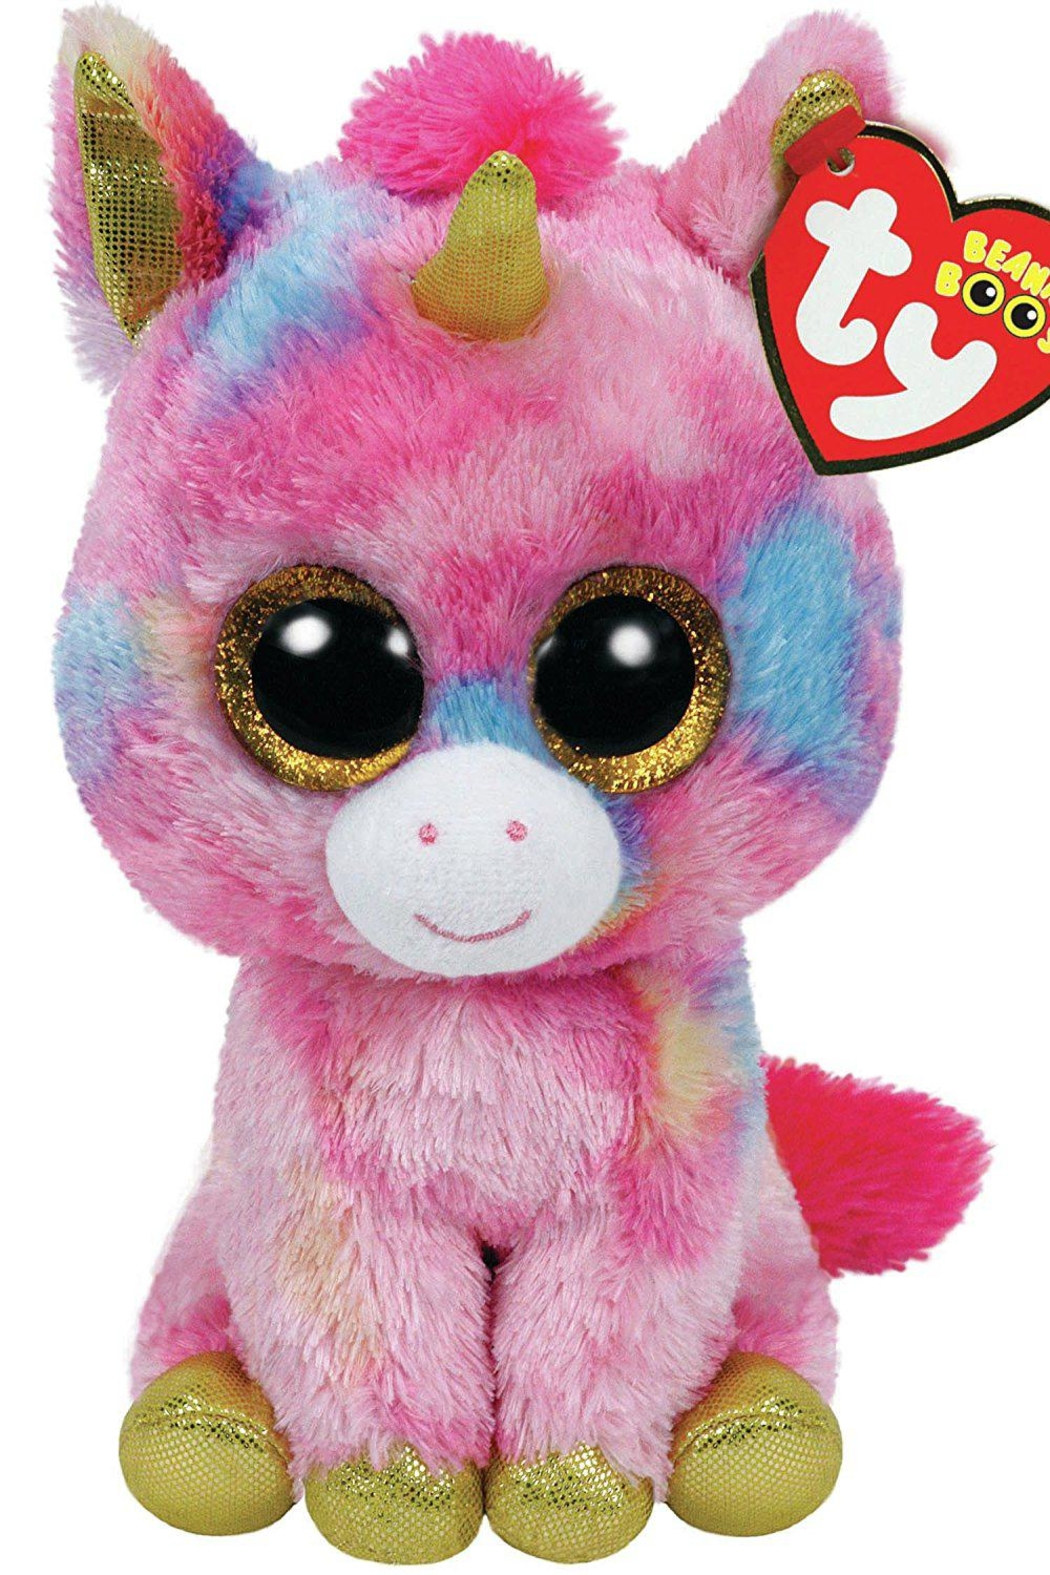 af280424c6d Other Beanie Boo Fantasia from Florida by Not Your Typical Dress ...